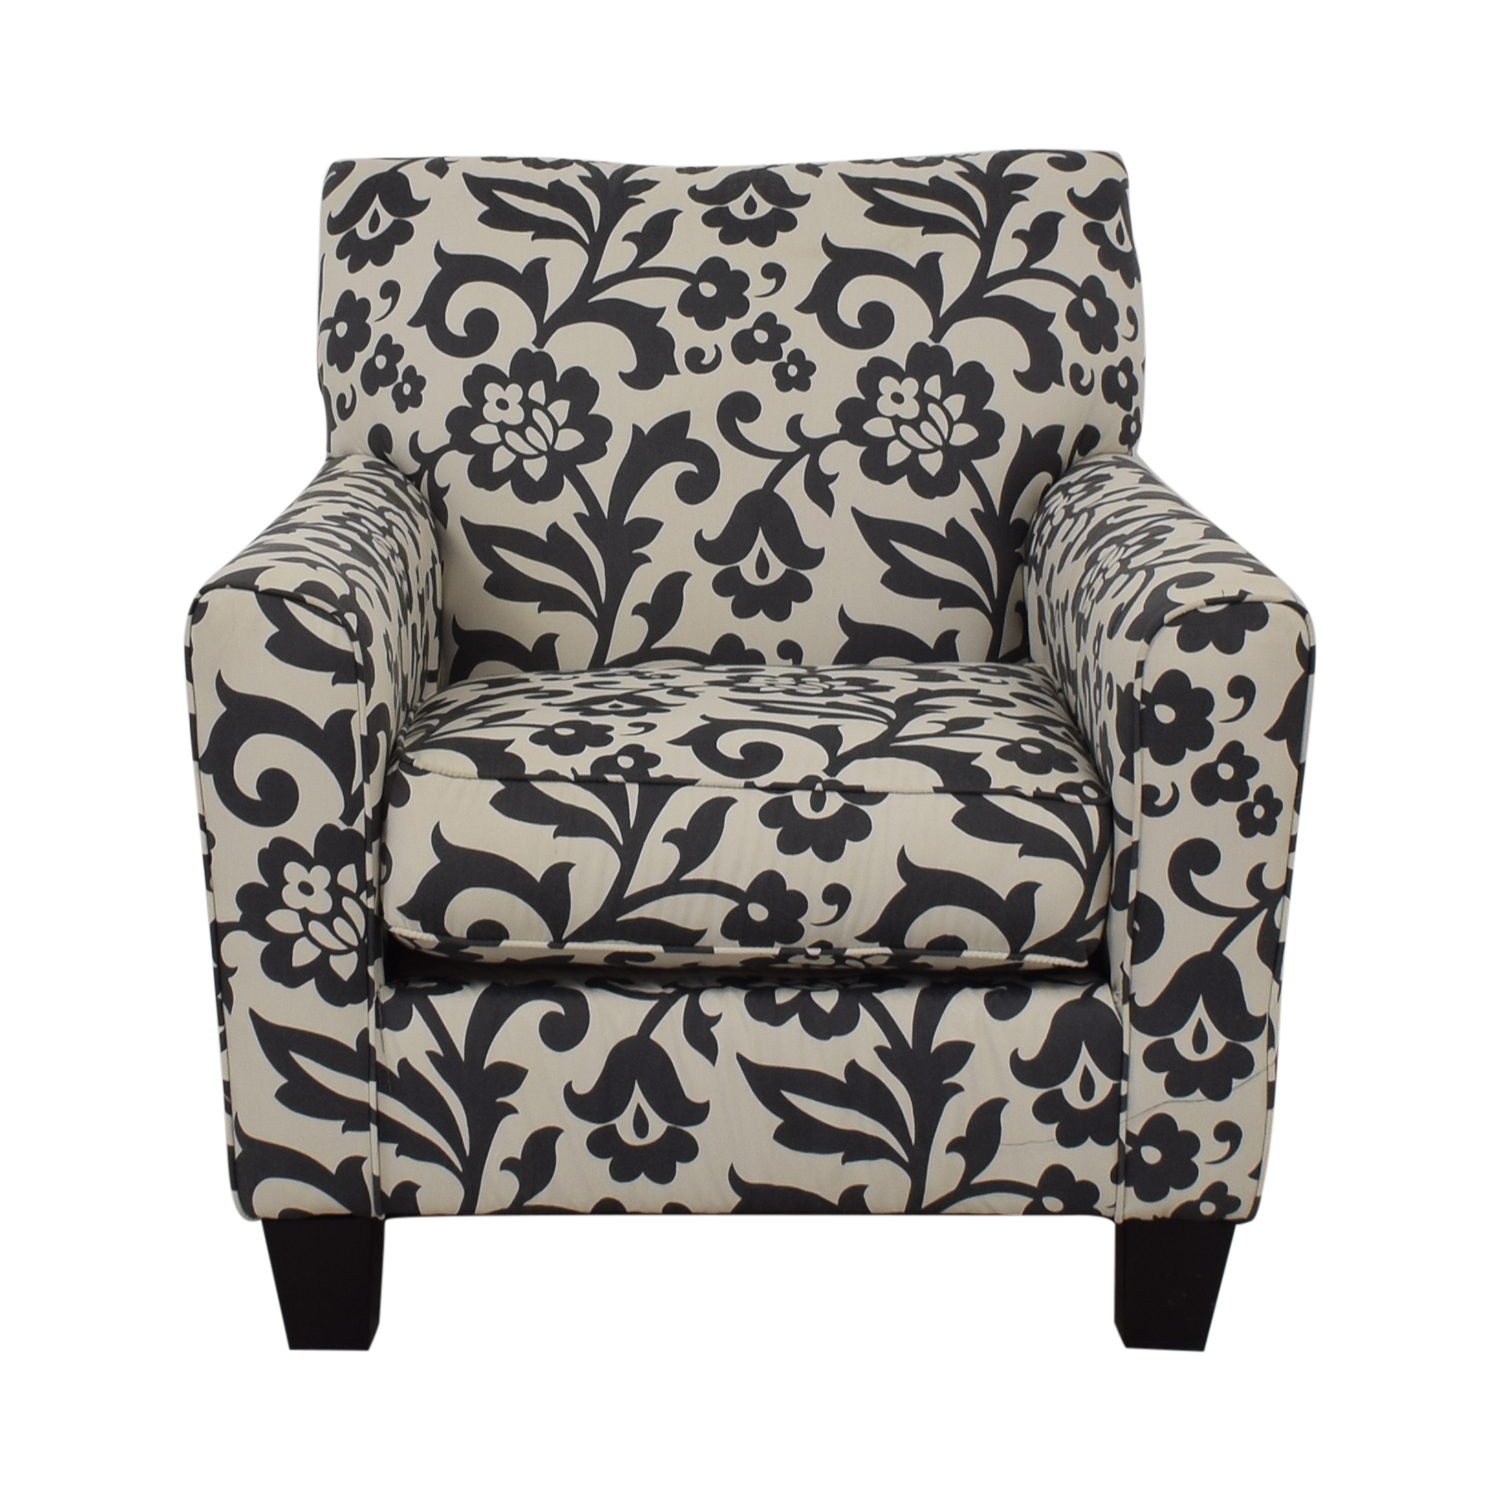 Ashley Furniture Ashley Furniture Floral Armchair nyc